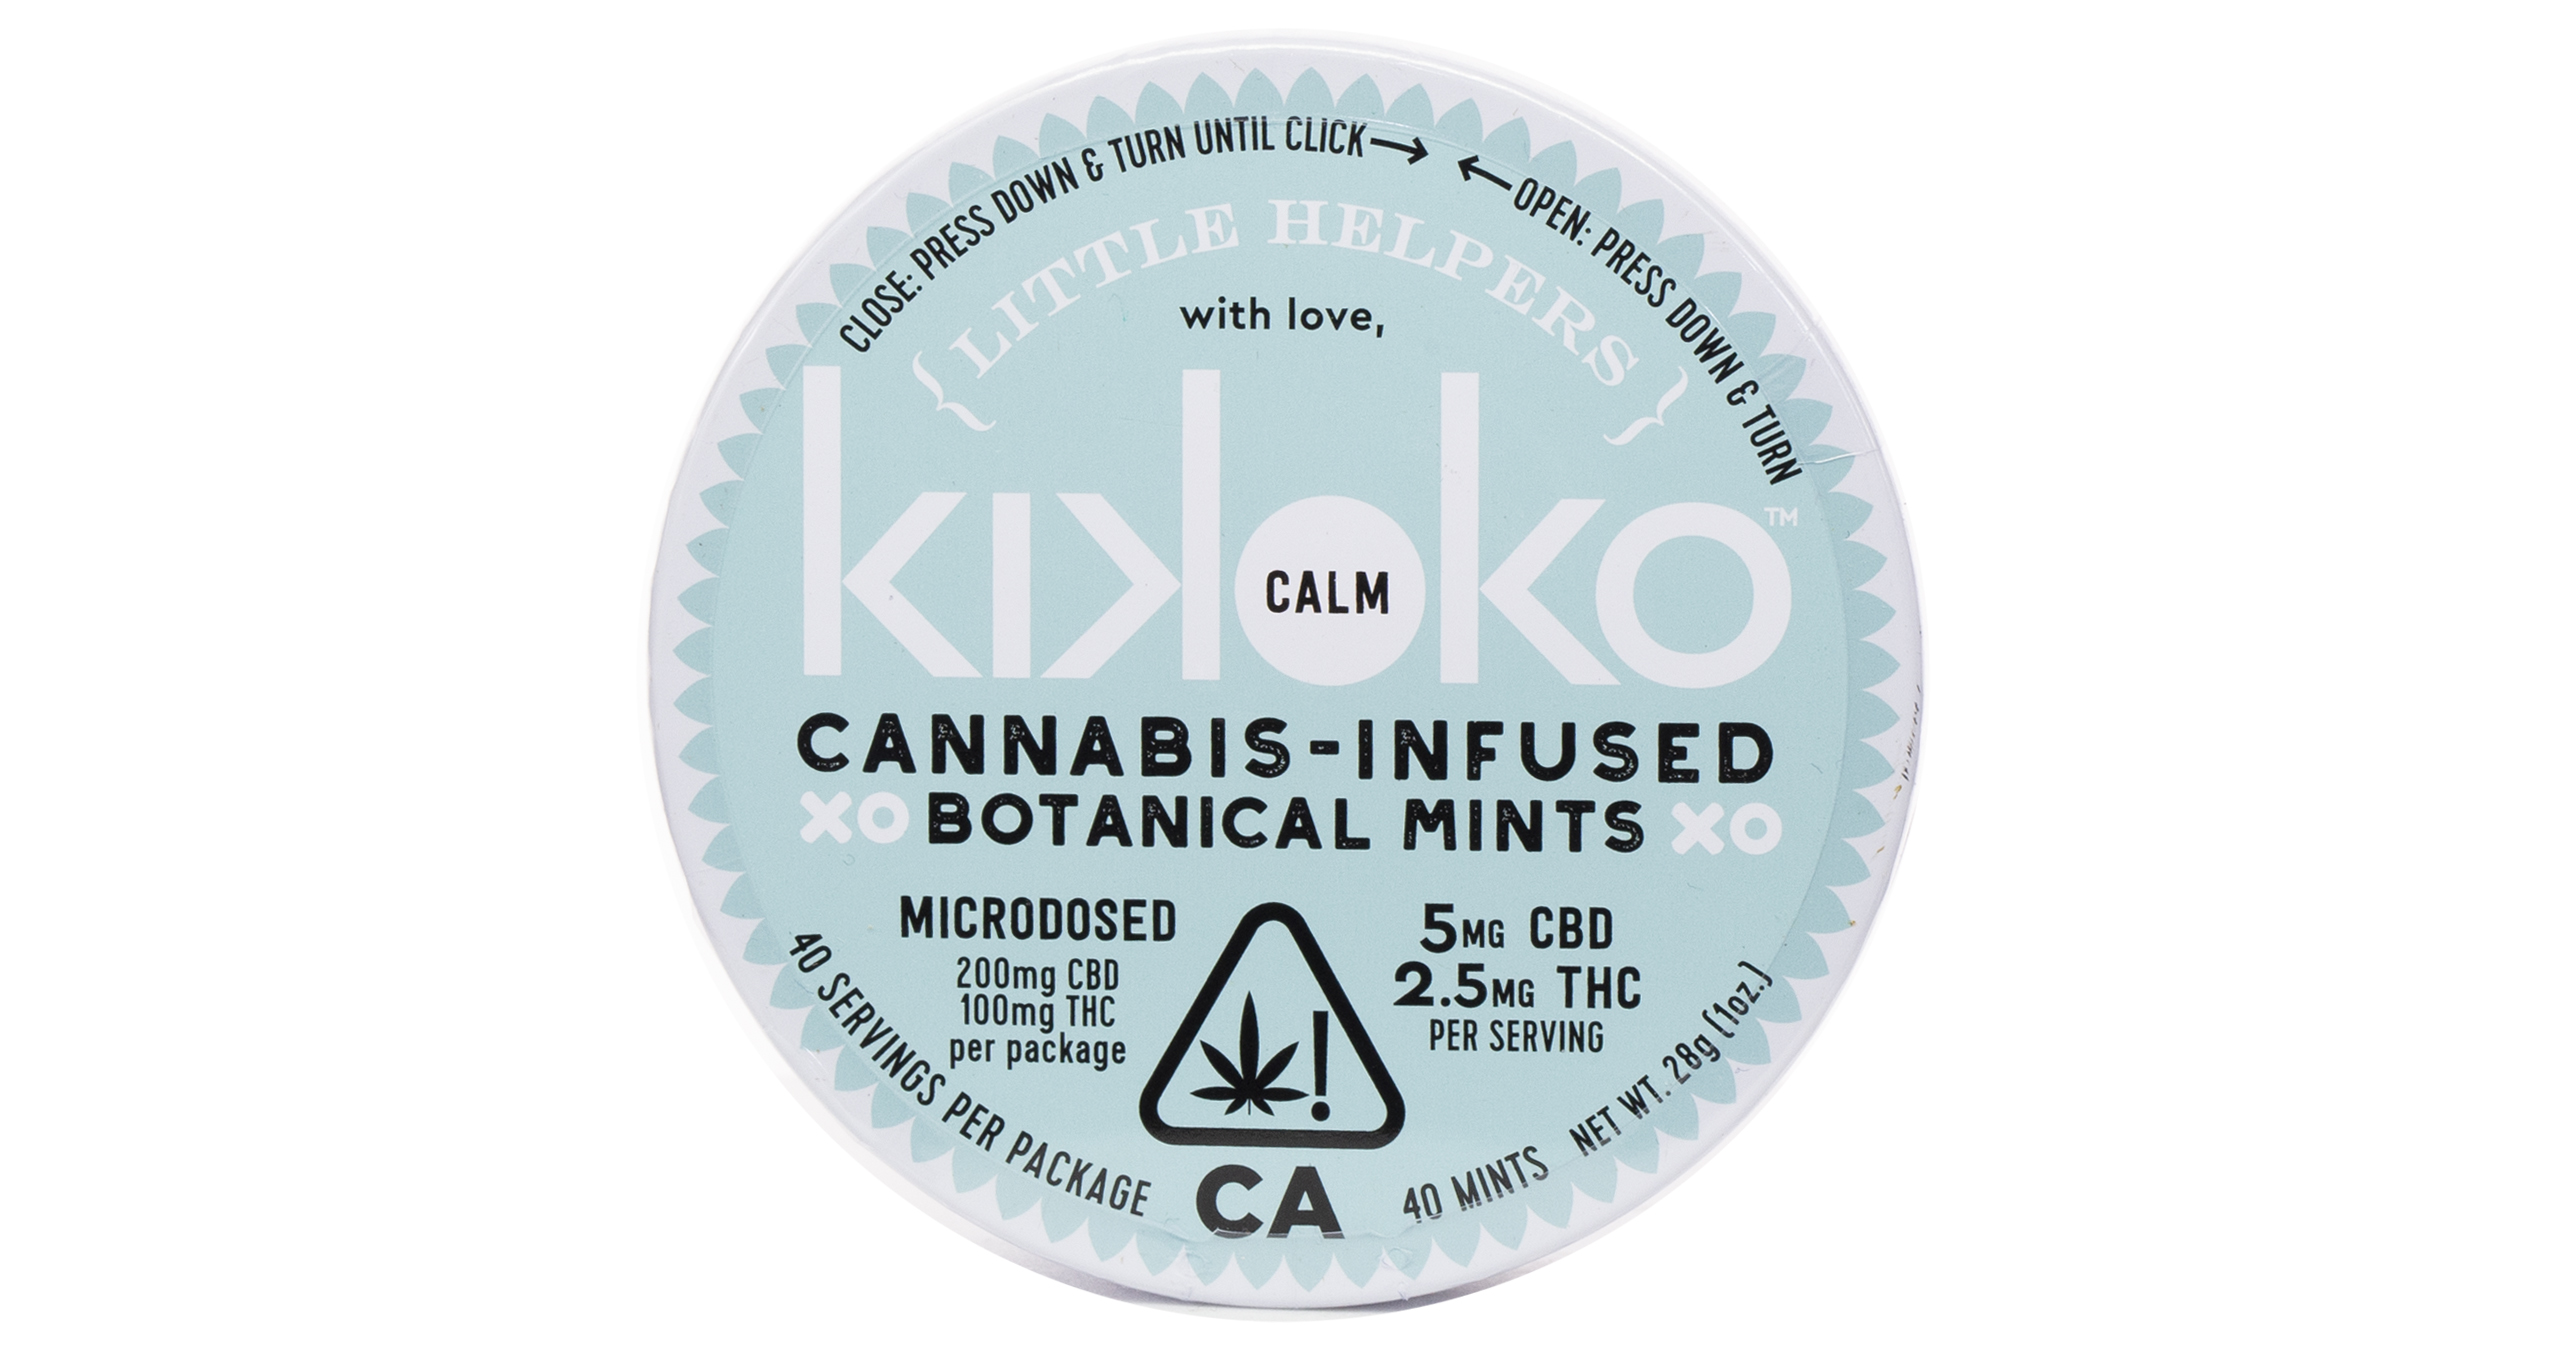 Kikoko Little Helpers Calm Mints 300mg San Diego Vista Imperial Cannabis Dispensary With Delivery March And Ash